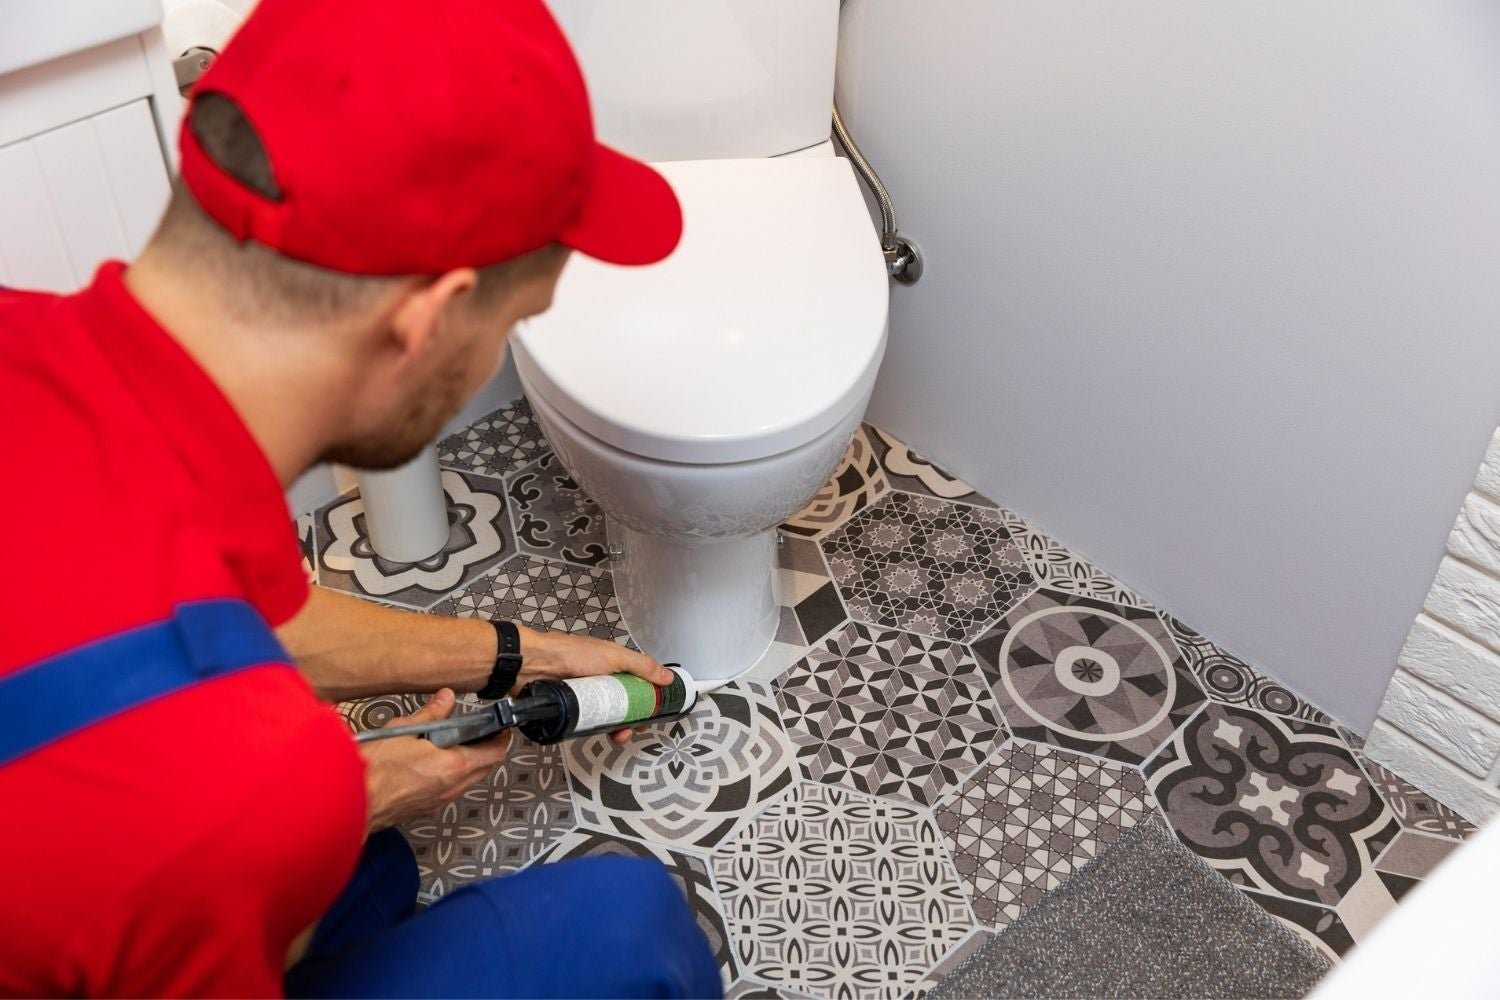 Solved! The Great Debate on Caulking Around the Toilet